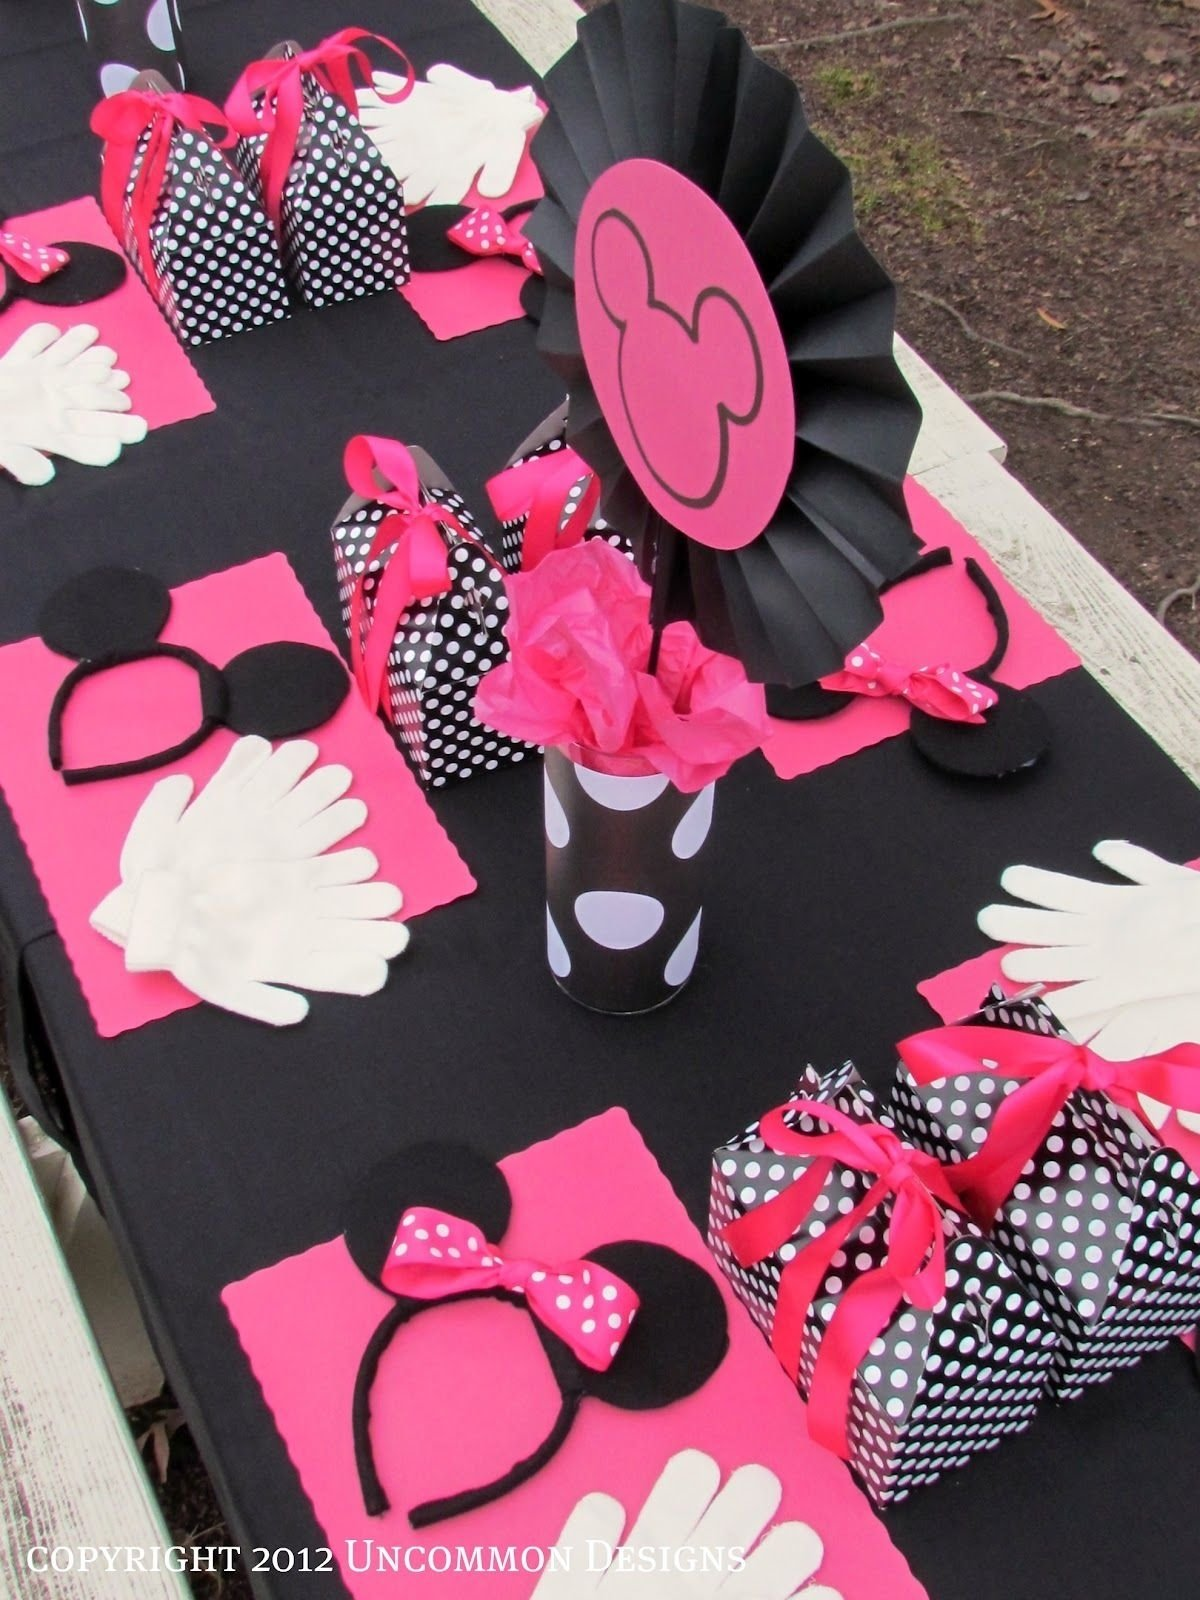 10 Most Popular Minnie Mouse 2Nd Birthday Party Ideas a minnie mouse birthday party minnie mouse mice and birthdays 1